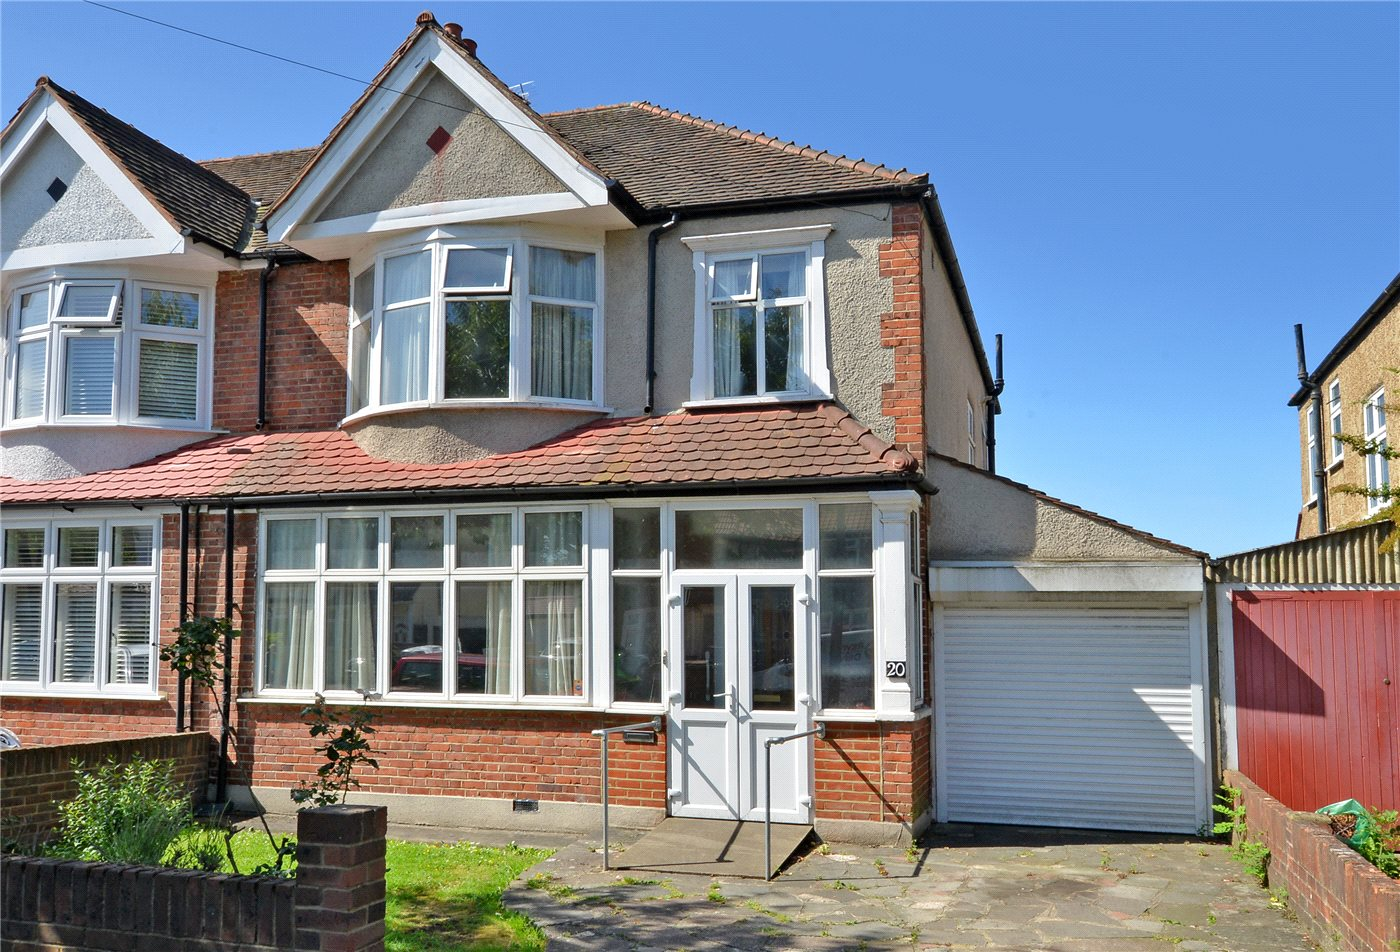 3 Bedrooms Semi Detached House for sale in Elm Way, Worcester Park, Surrey, KT4